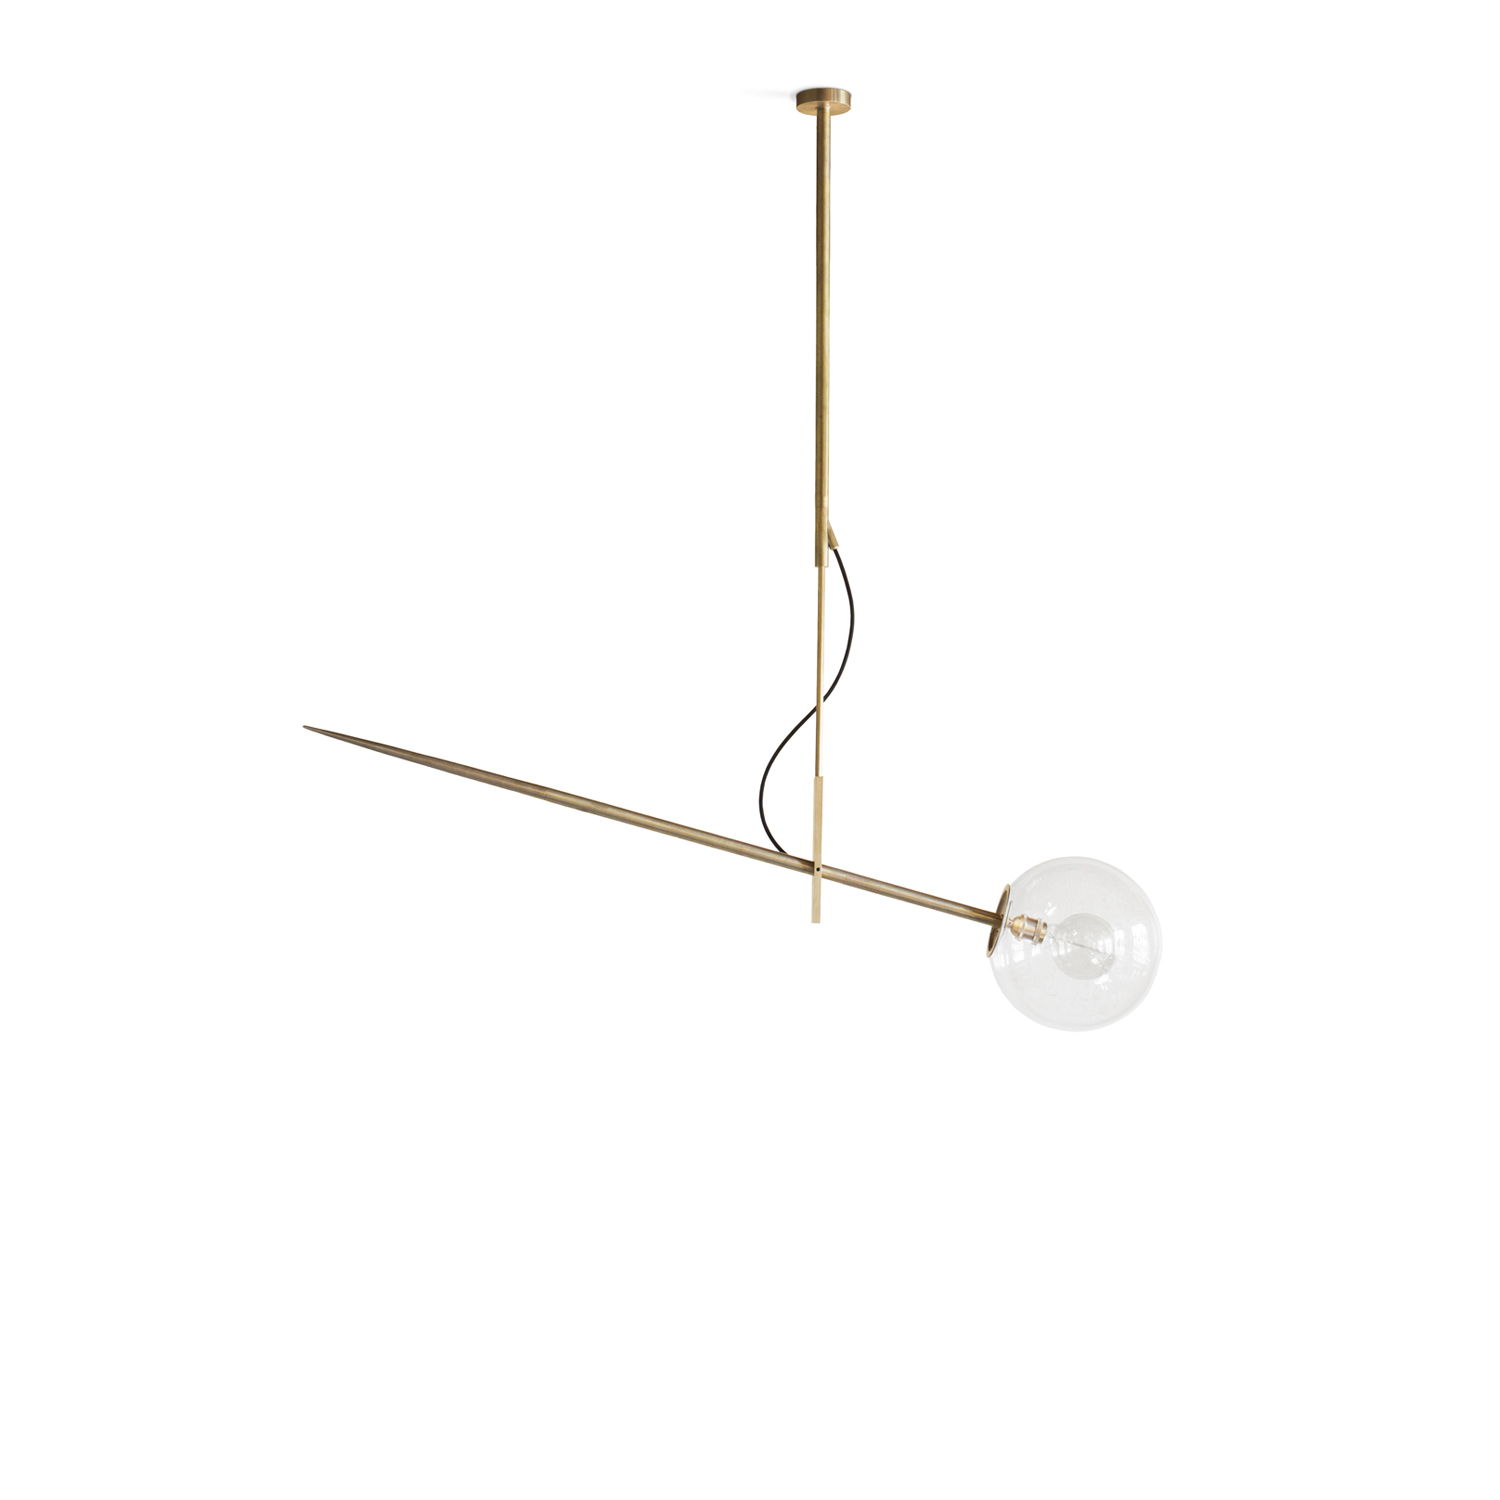 Hasta Hanging Lamp Large - Brass ceiling lamp with a glass shade. The elements are made of full brass. The supplied cable is available in two colors, black or red. Best matches the decorative bulb. Possible to order the lamps of different heights. The lamp has the certificate. Serial number is engraved on the lamp. Hand crafted.  | Matter of Stuff